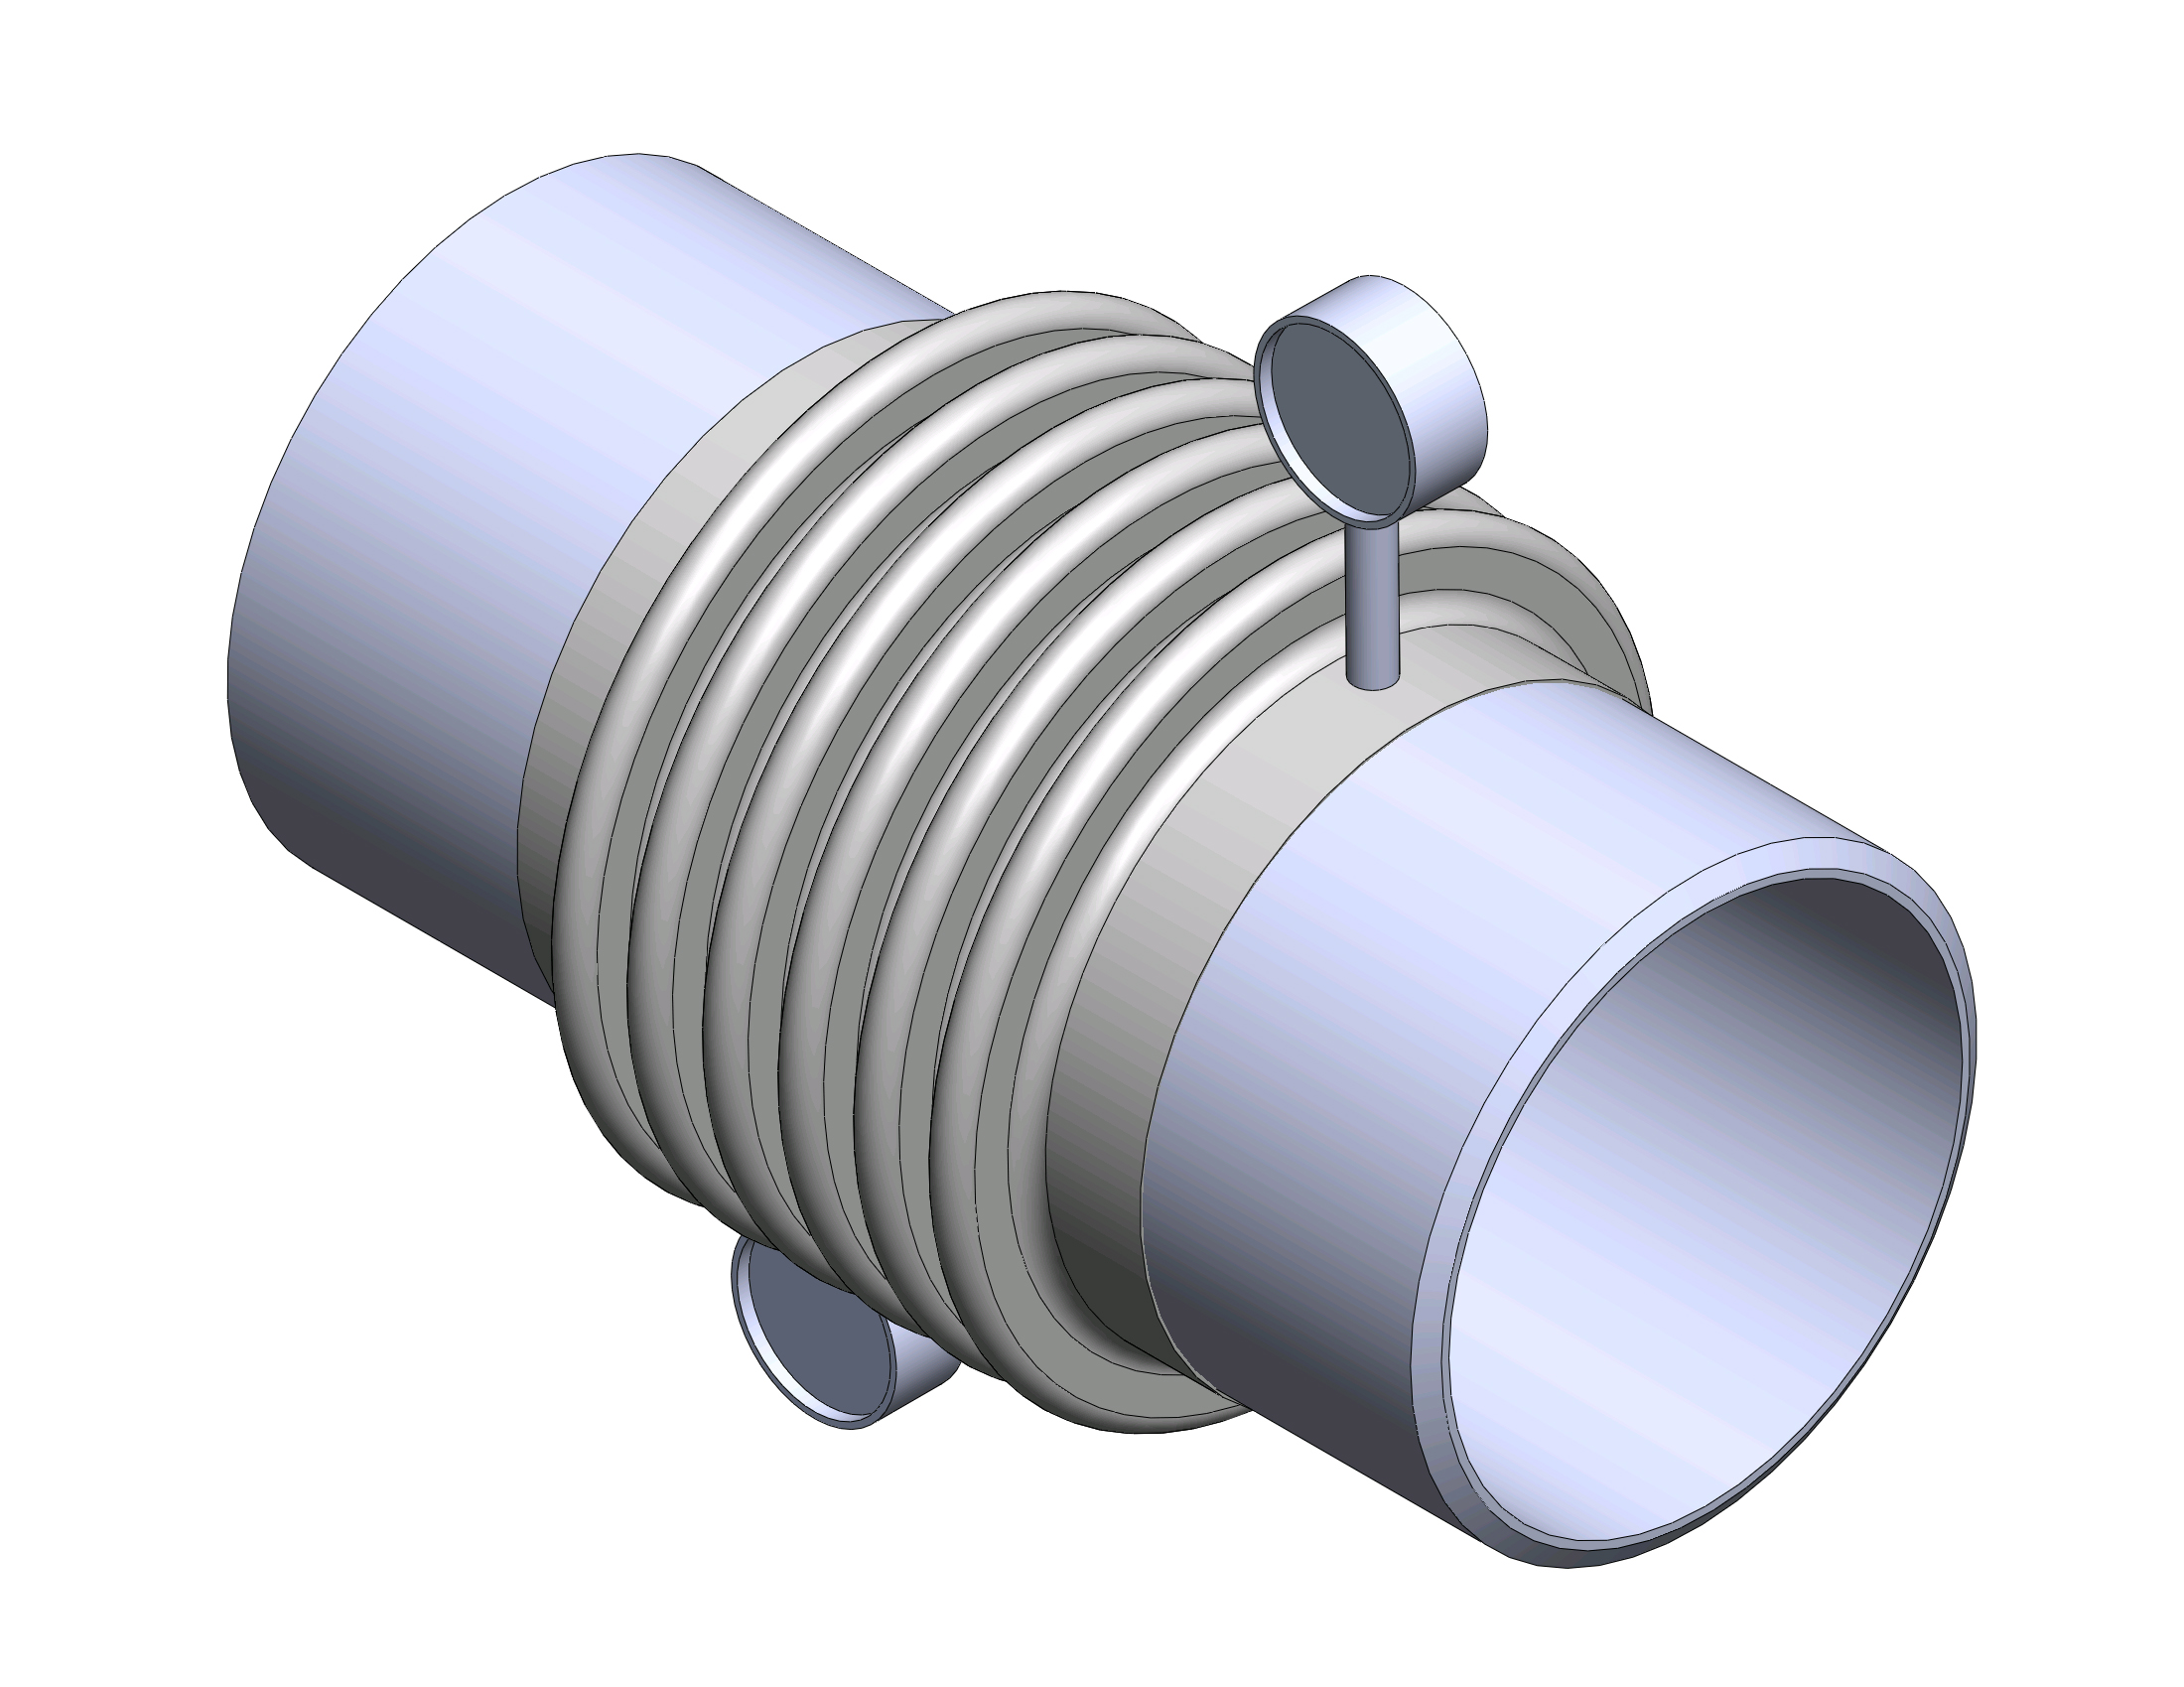 Two ply testable bellows expansion joints dme